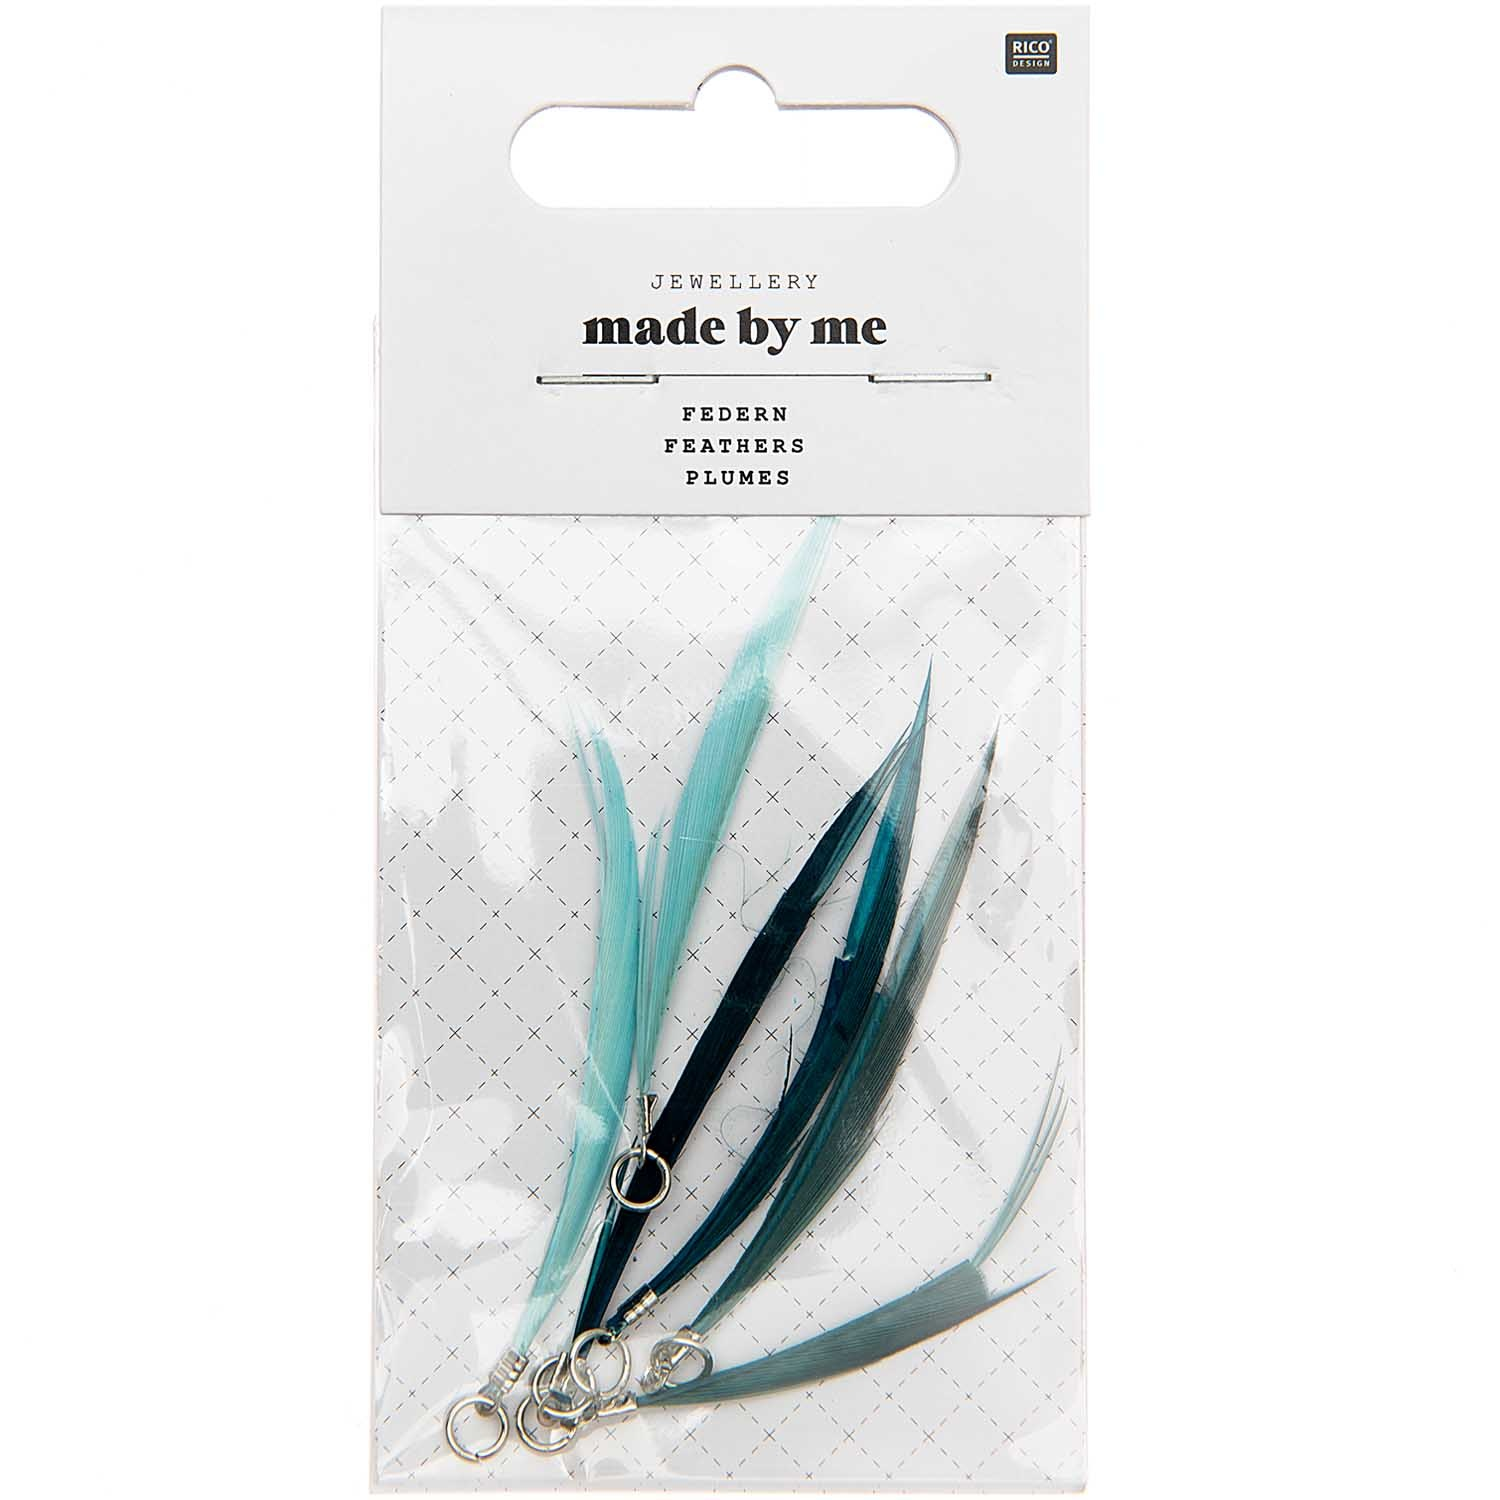 Rico NAY FEATHERS, TURQUOISE MIX 6 PCS, WITH SILVER EYELET